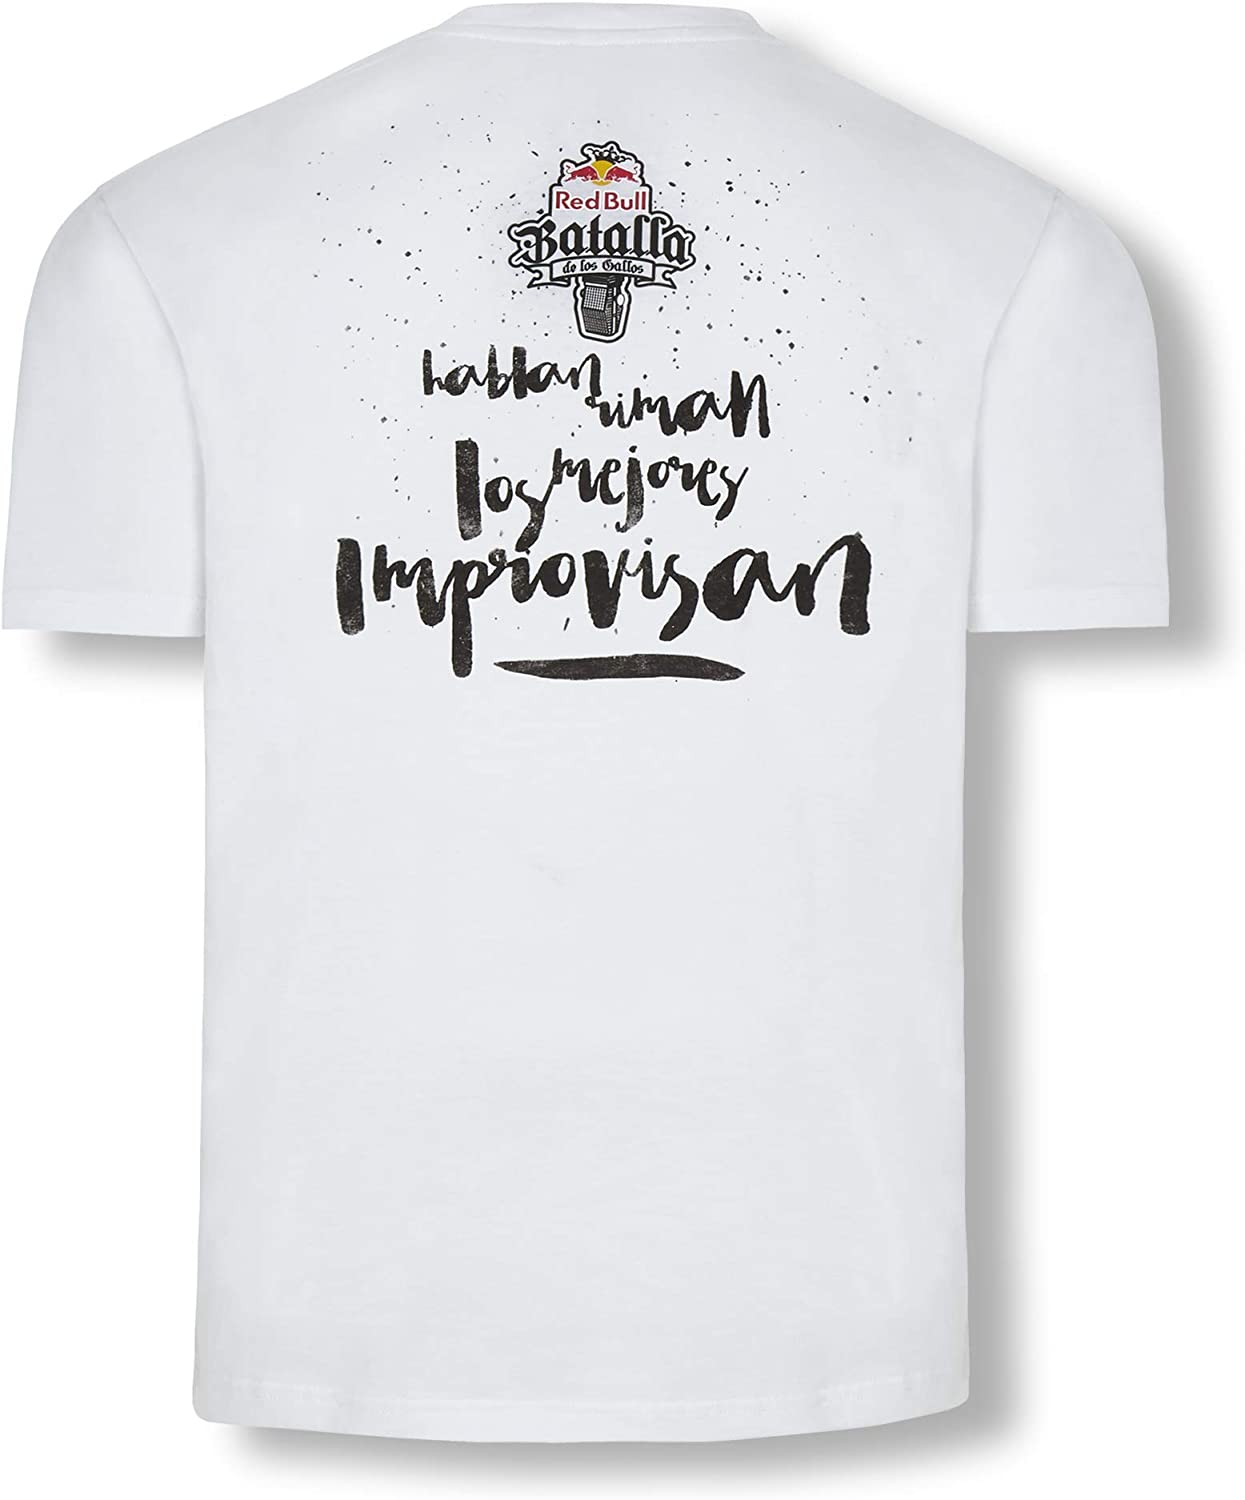 Red Bull Batalla Freestyle Camiseta, Blanco Hombre XX-Large Top ...